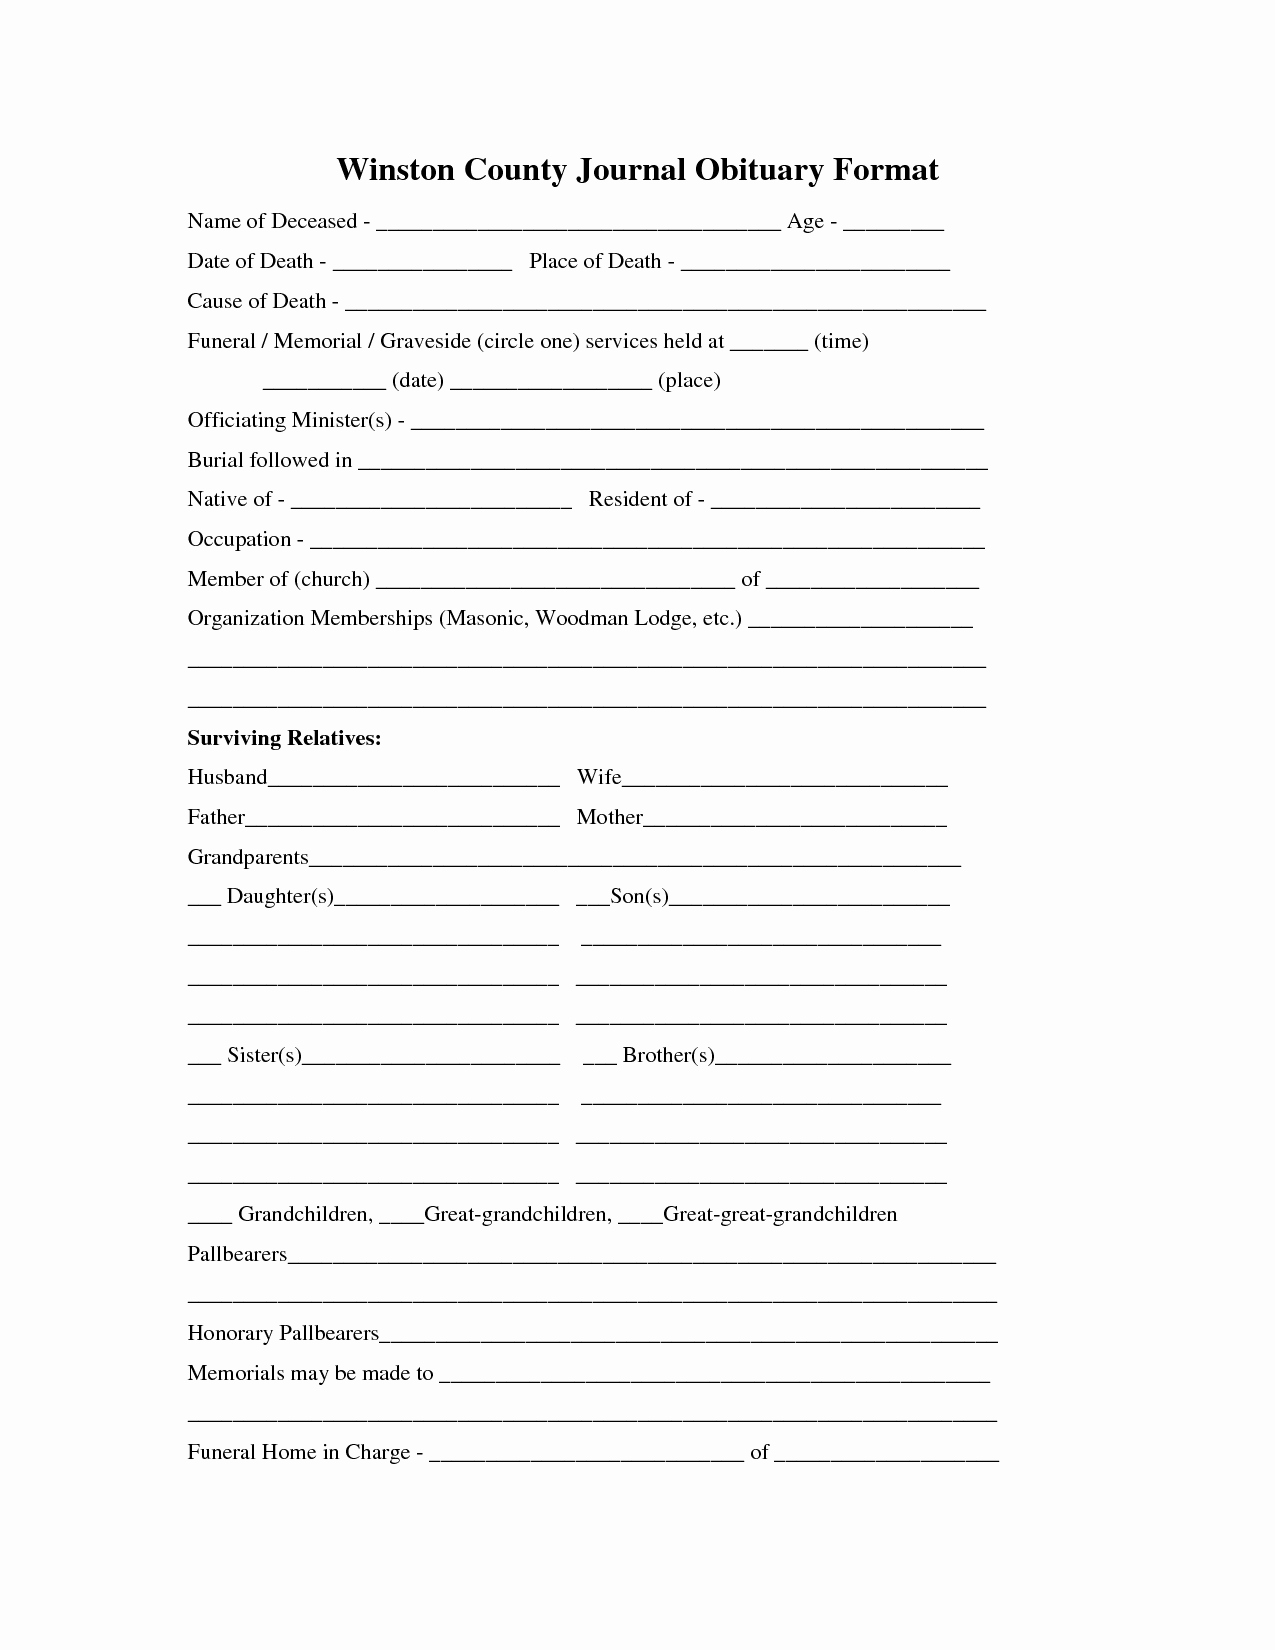 Best S Of Obituary Fill In form Fill In the Blank